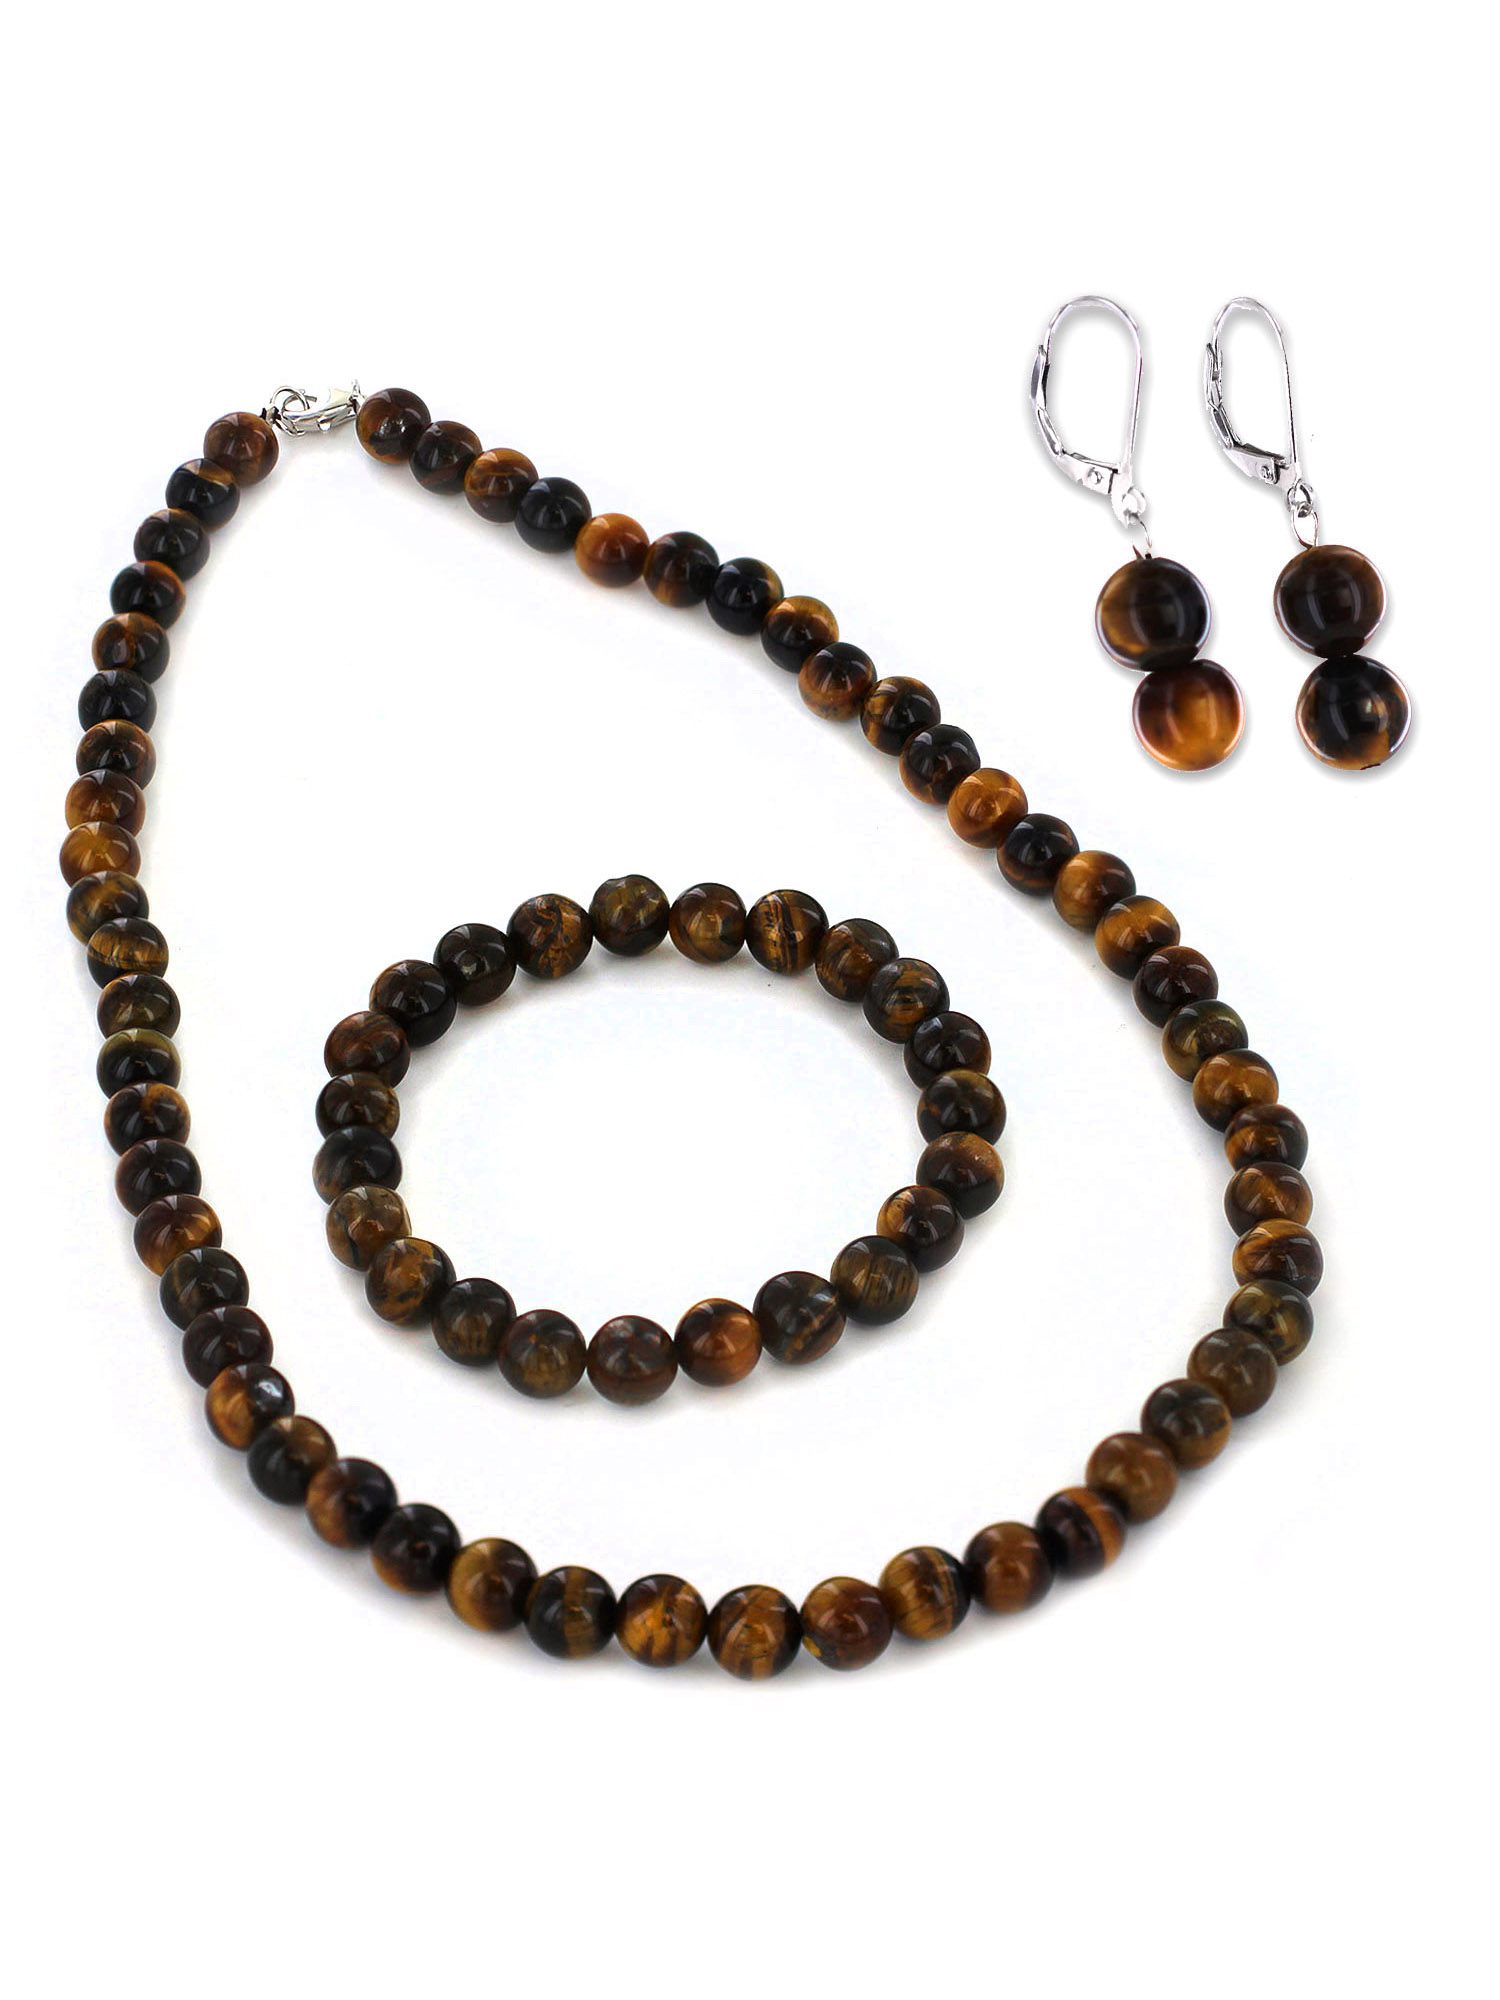 Women's Sterling Silver Tiger's Eye Bracelet Earring and Necklace Set